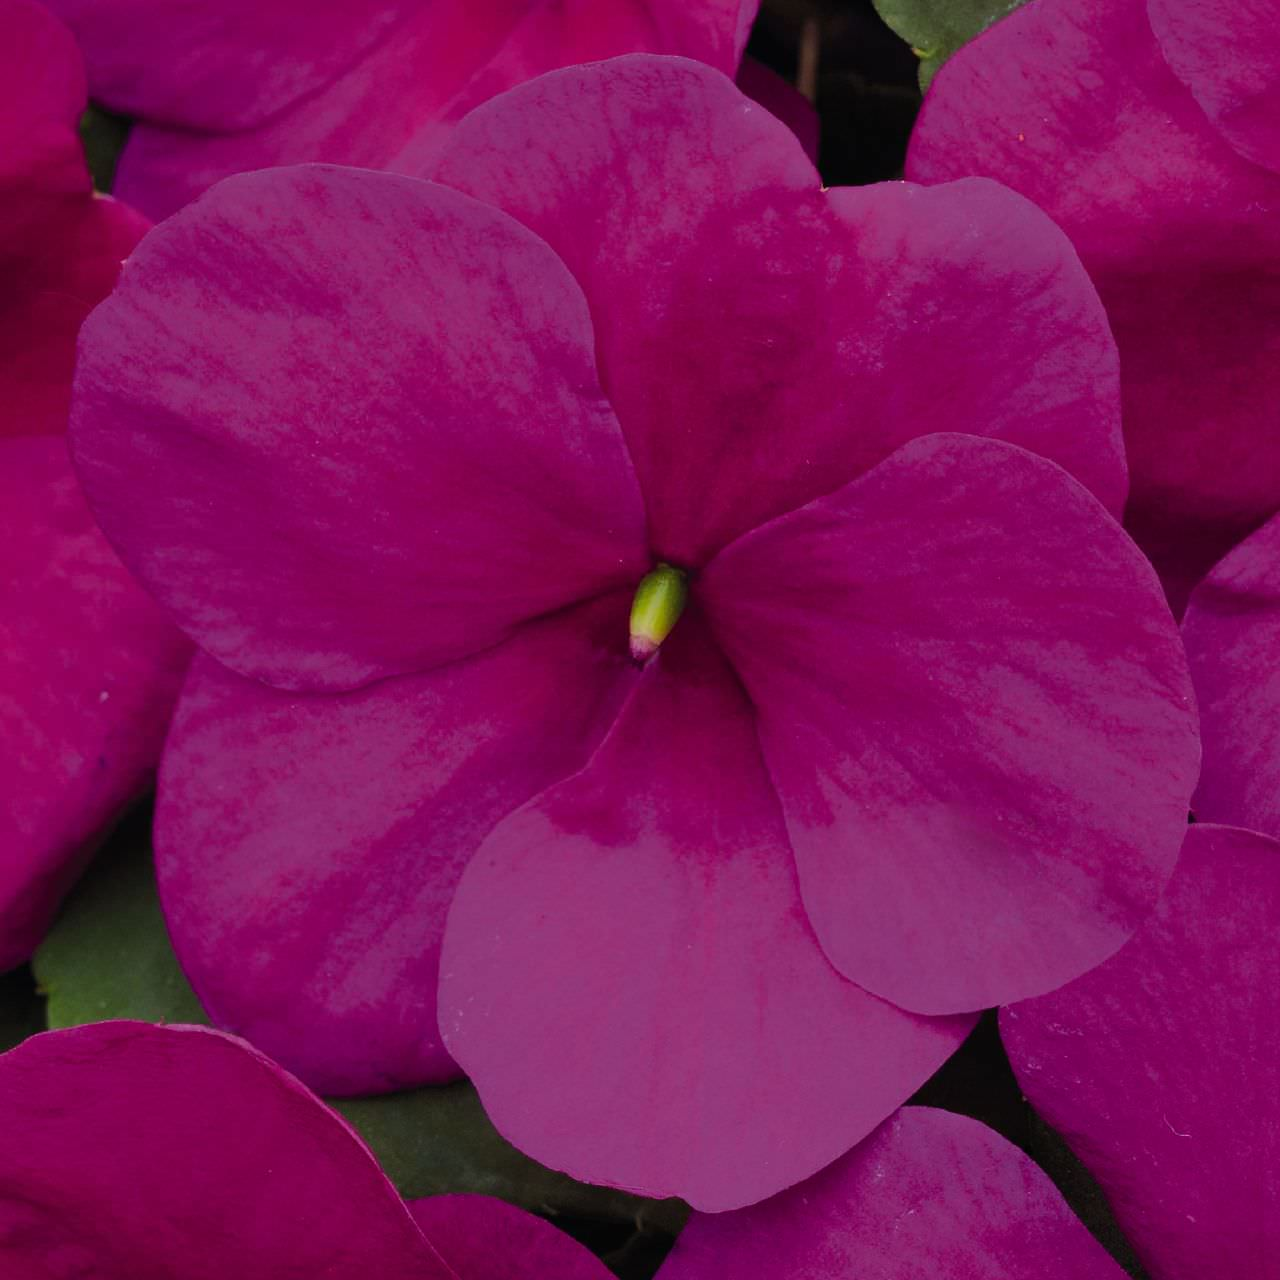 Impatiens seeds 30 impatiens annual flower seeds impatiens lollipop raspberry violet annual flowers mightylinksfo